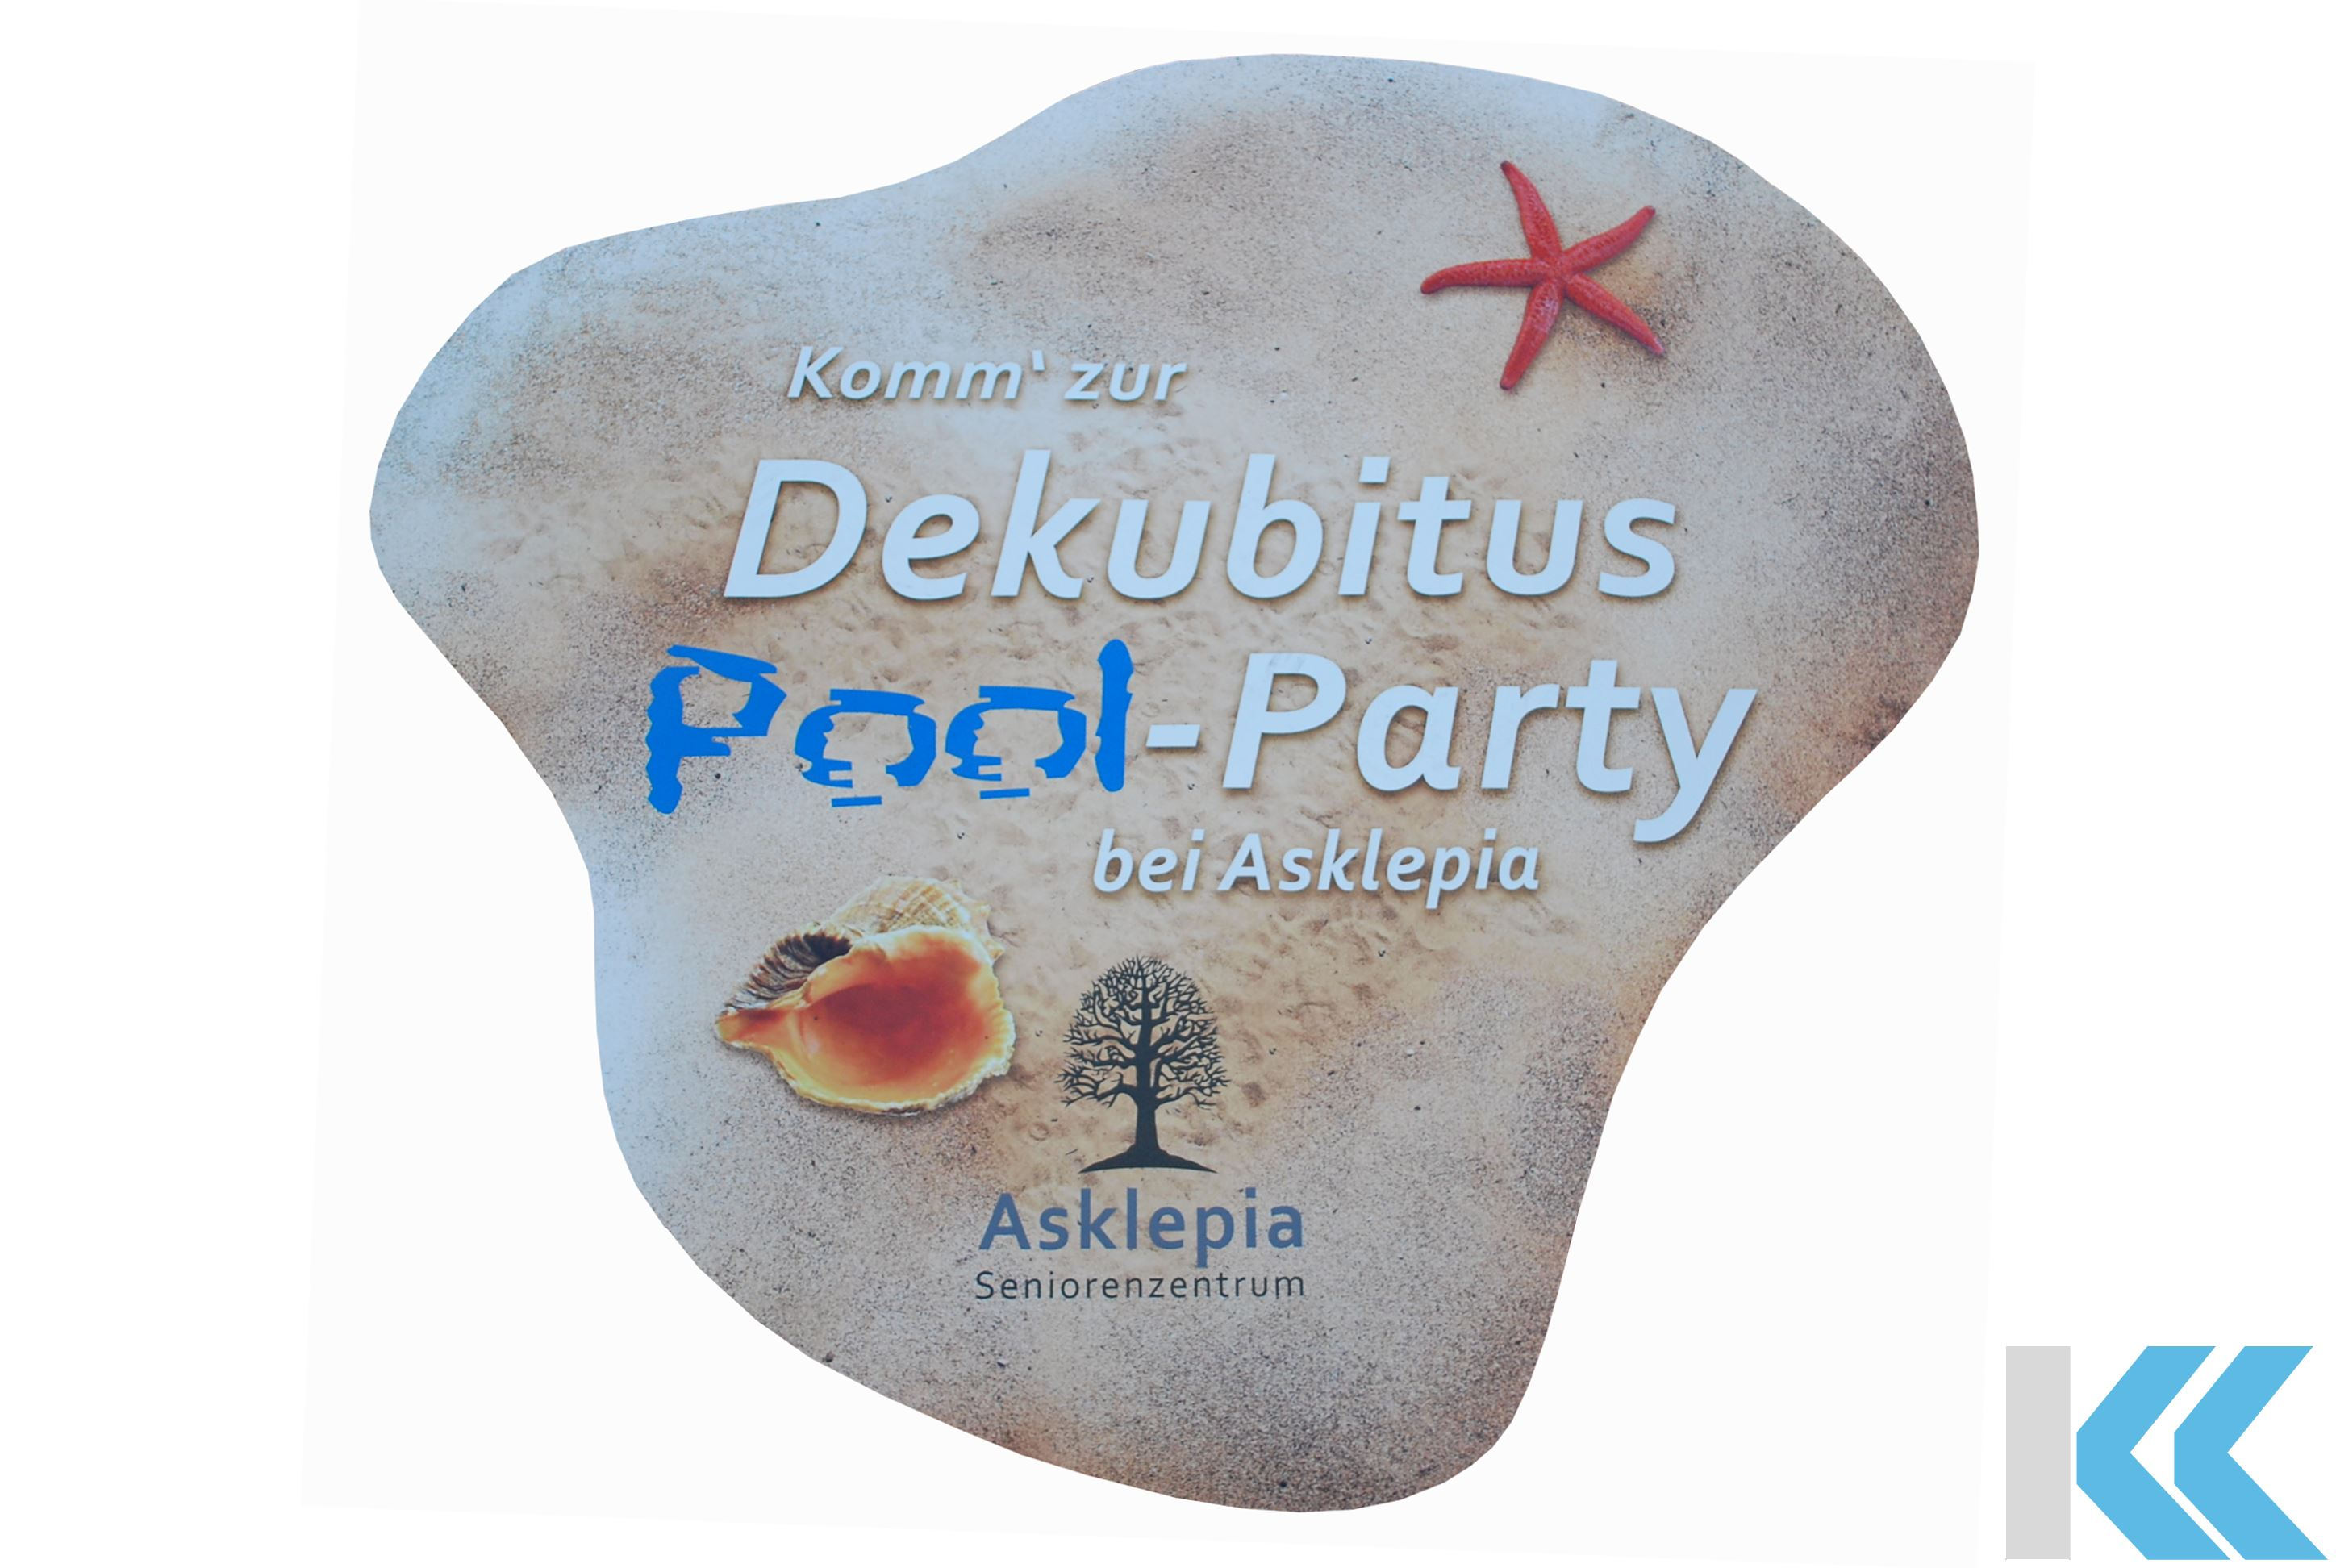 Dekubitus Pool Party Asklepia